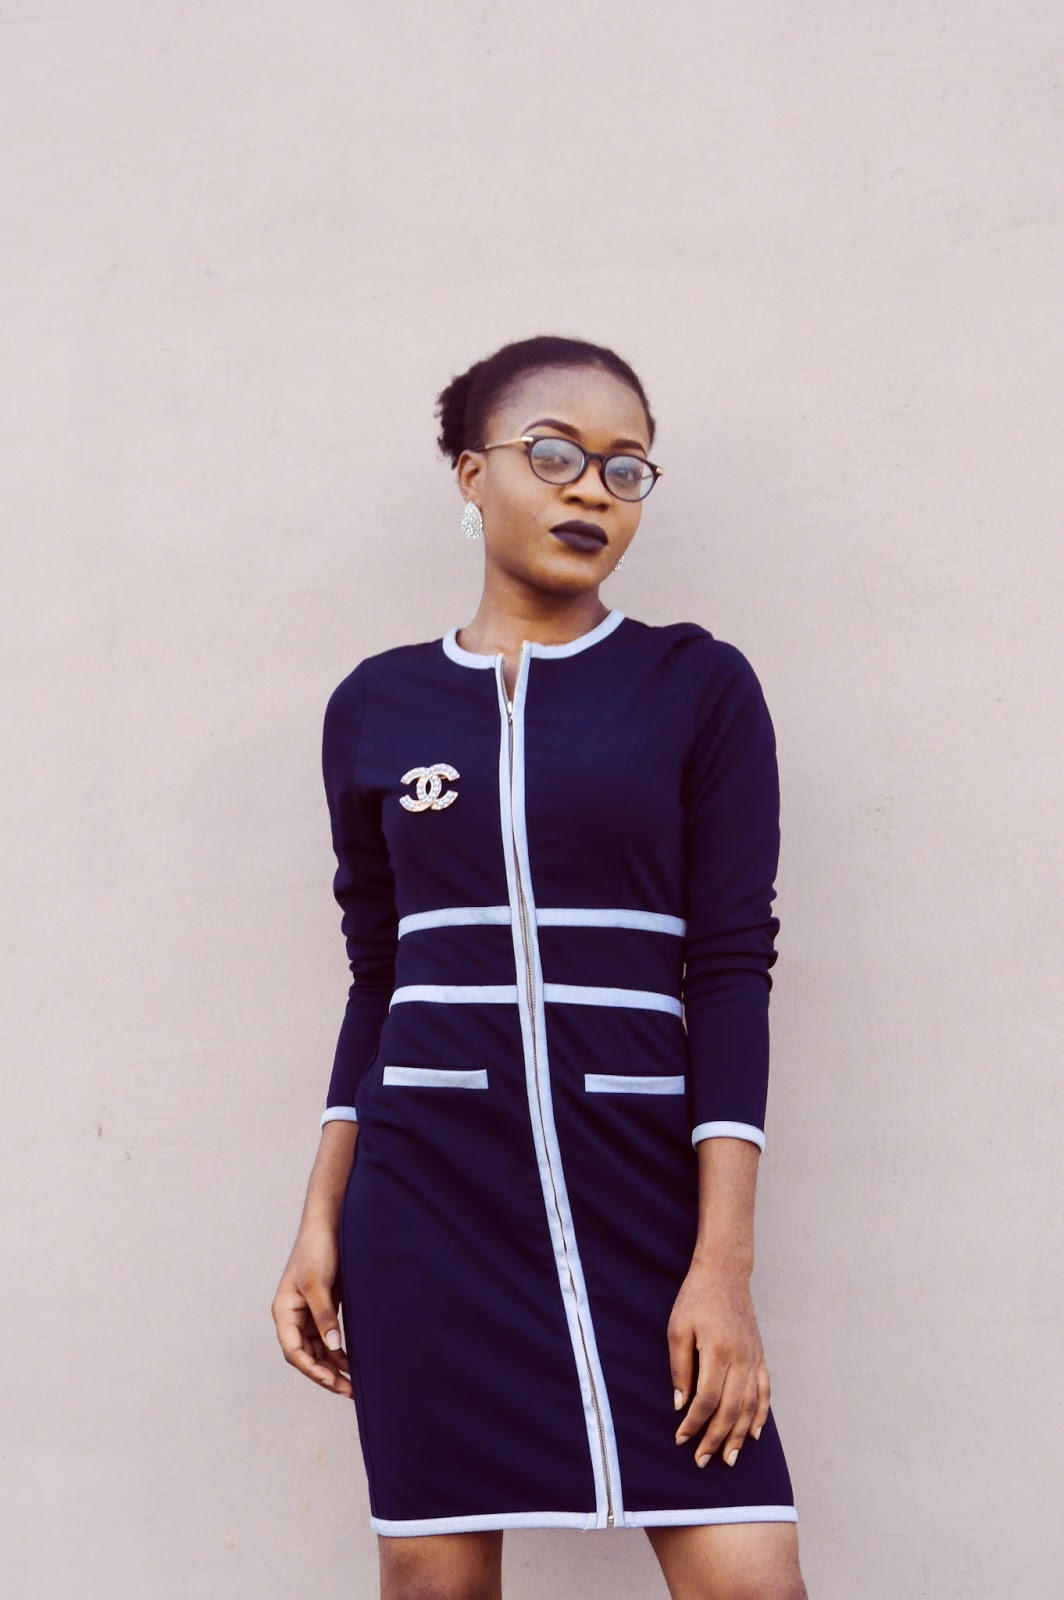 navy blue and white zip up dress, chanel brooch, round clear eyeglass, oncedarplanet, cedaradinfono